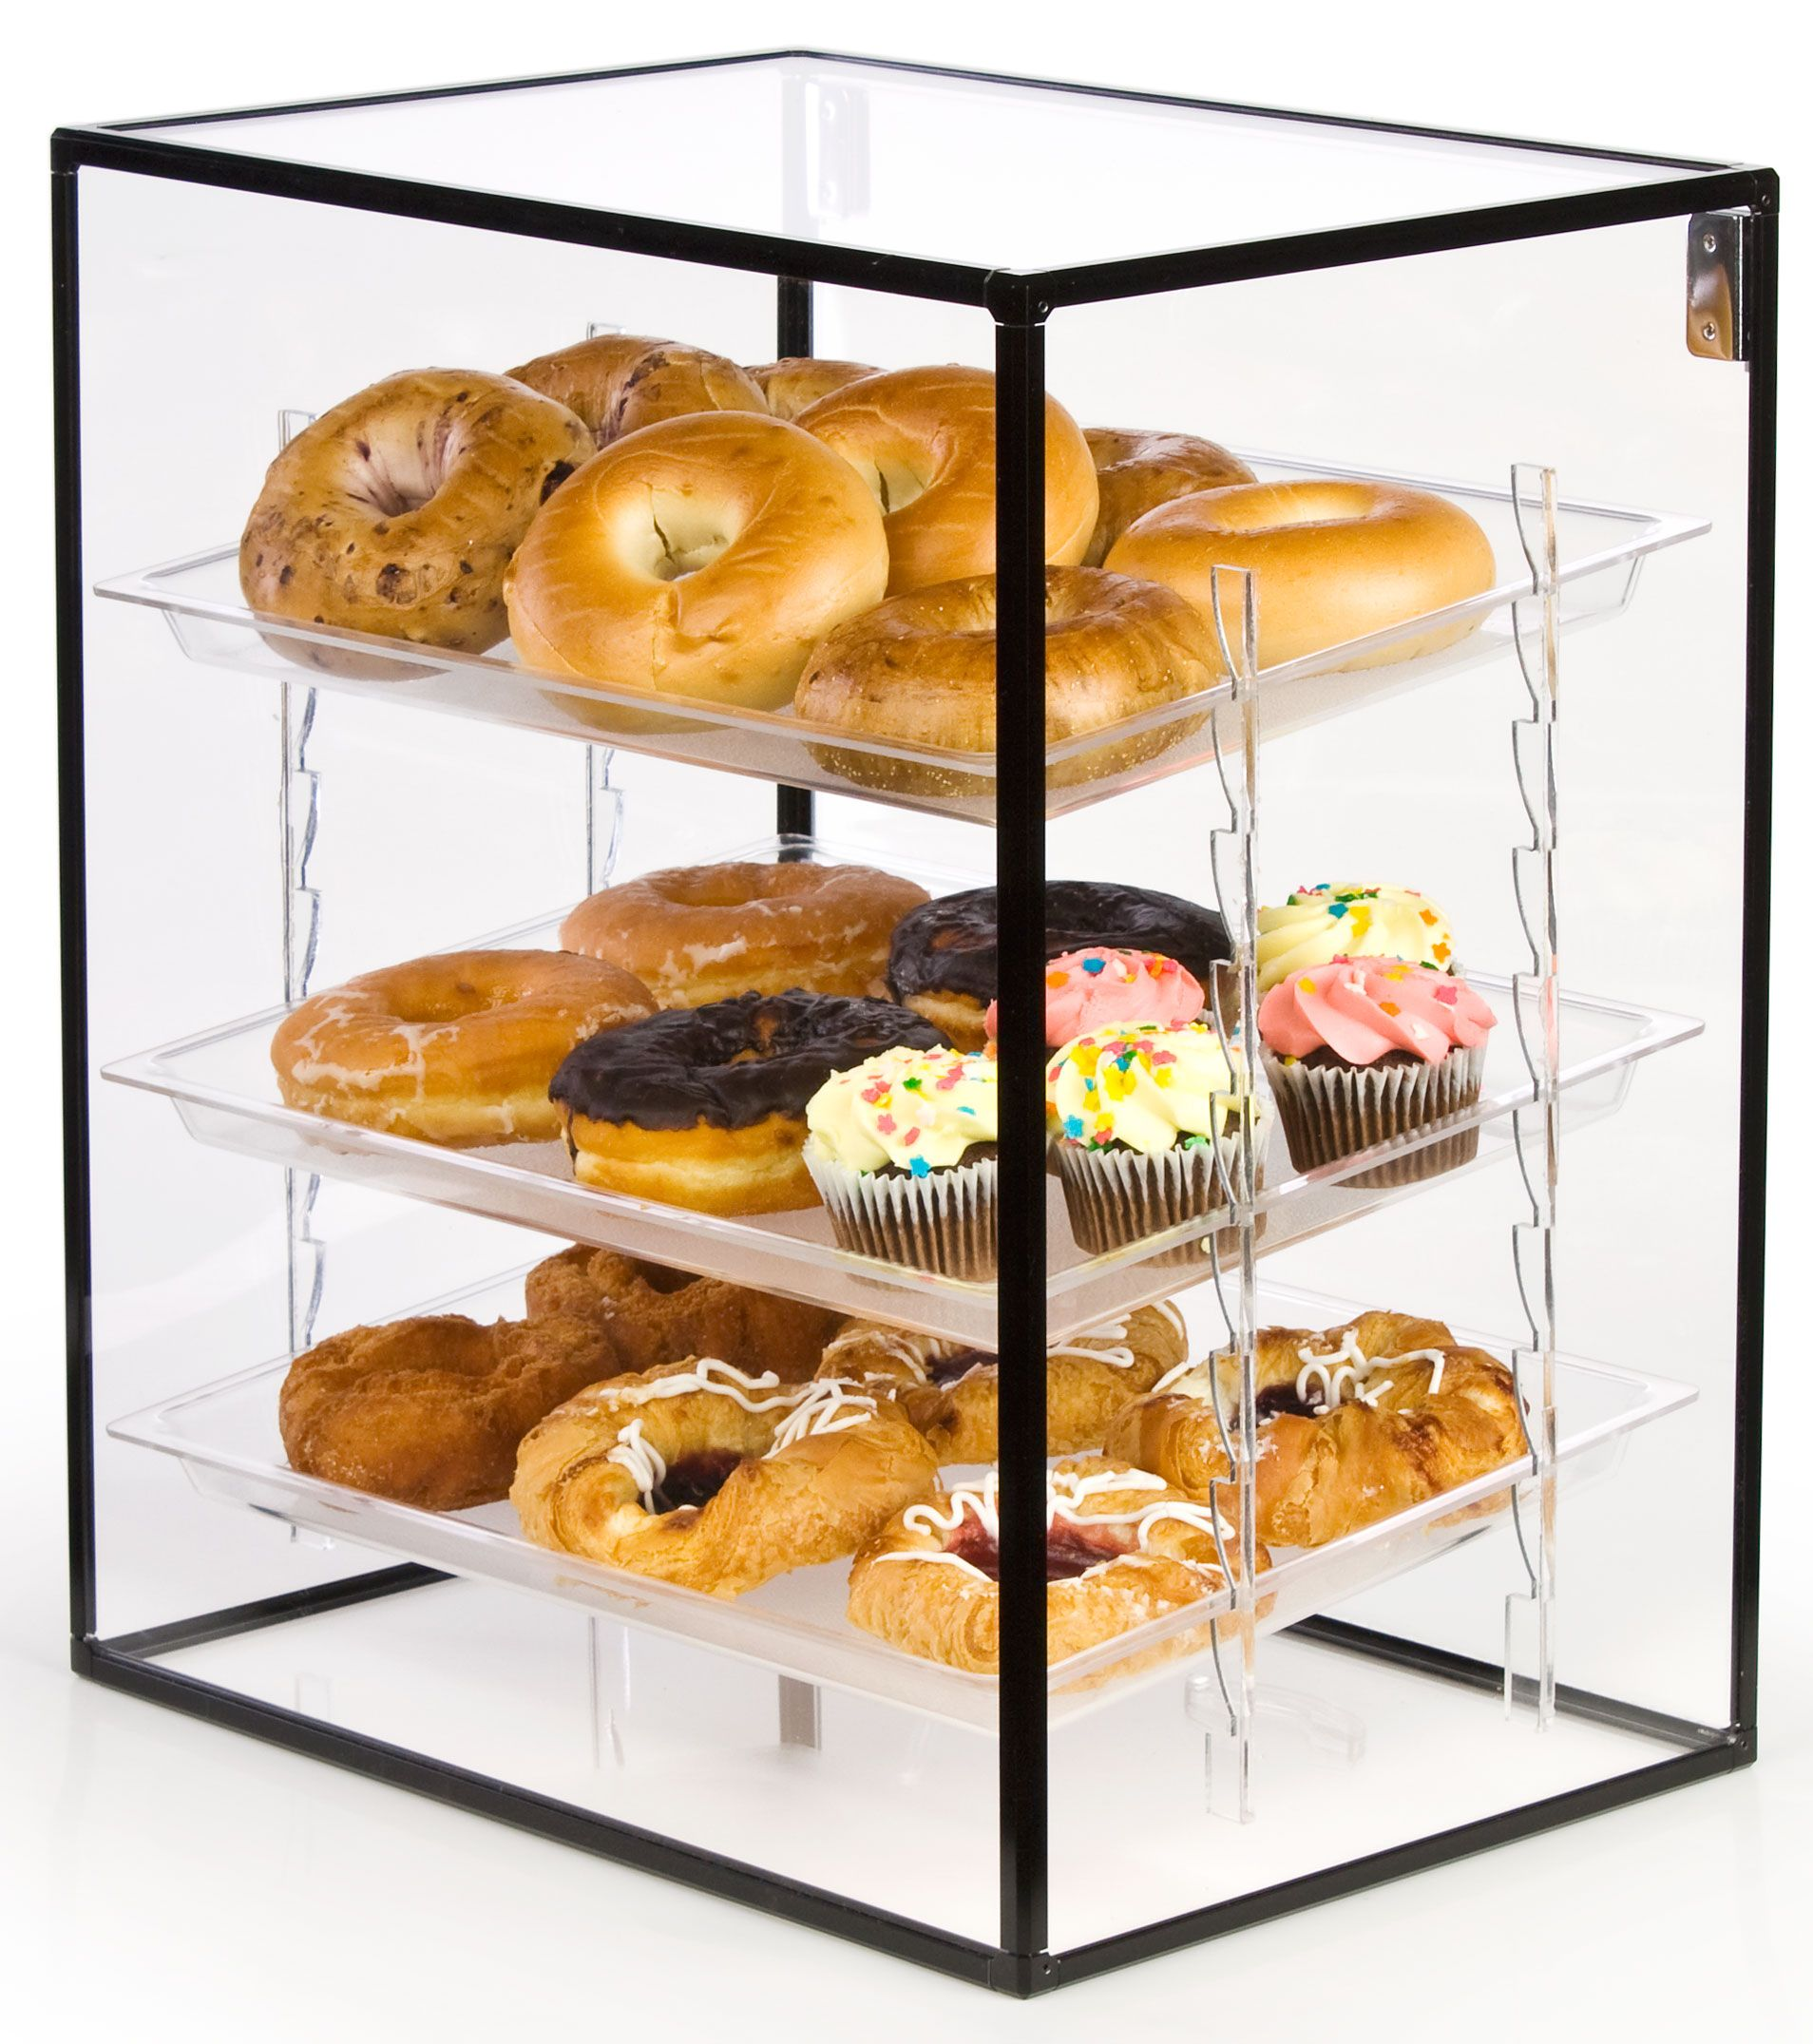 cabinet display countertop delfield small counter bakery refrigerated sale cases curved countertops refrigerator pastry case chocolate glass